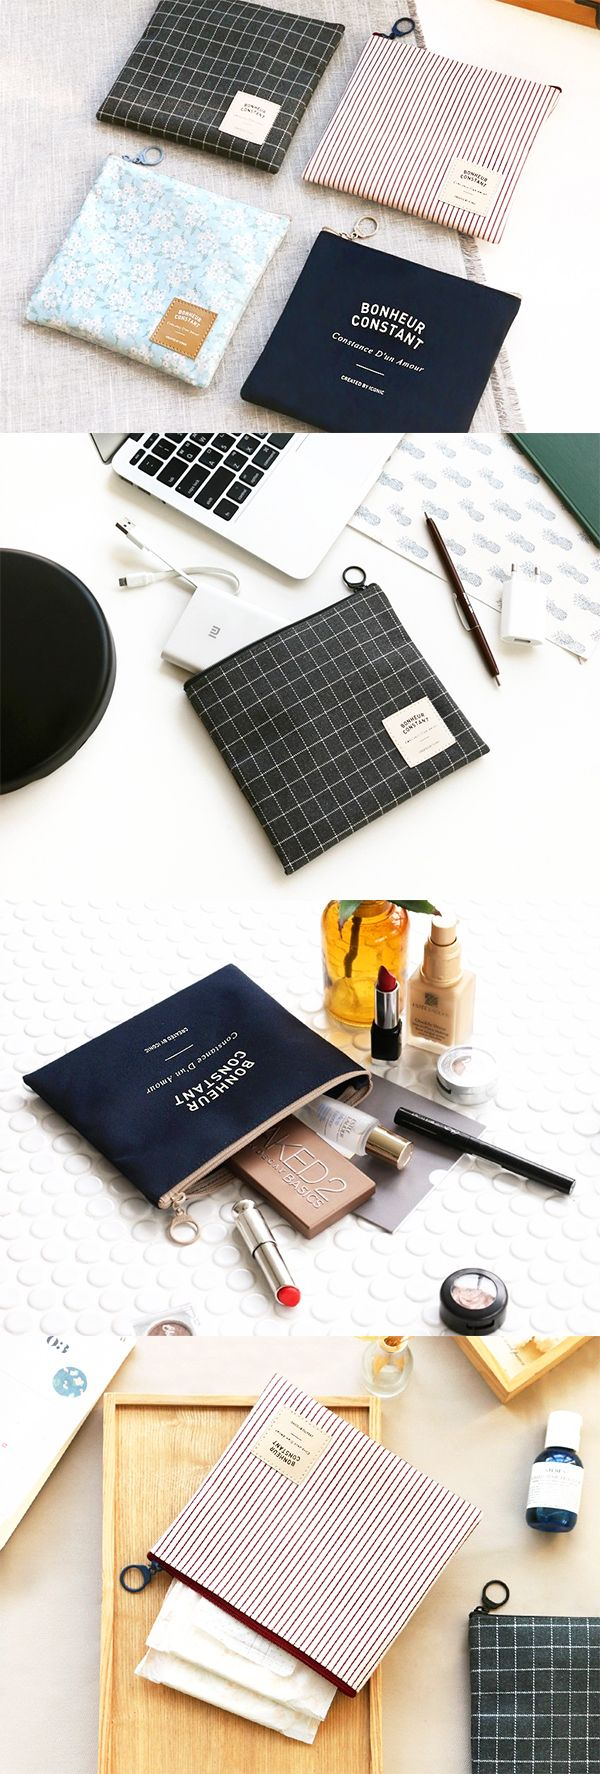 The Medium Basic Pouch: the classiest way to carry my make up, skin care, feminine hygiene products, and so much more!